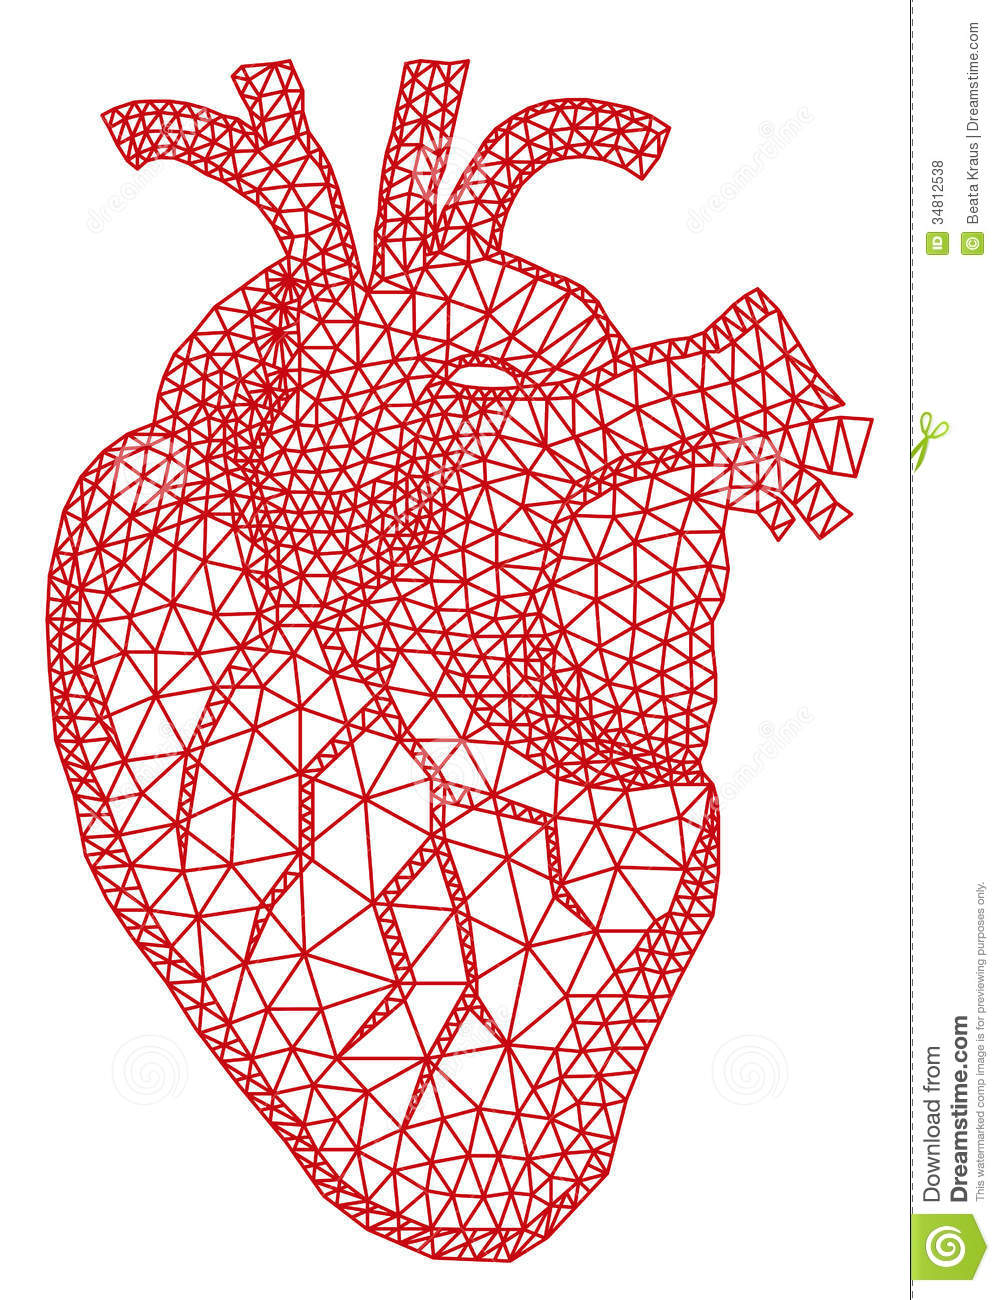 Heart With Geometric Pattern, Vector Royalty Free Stock Photos ...